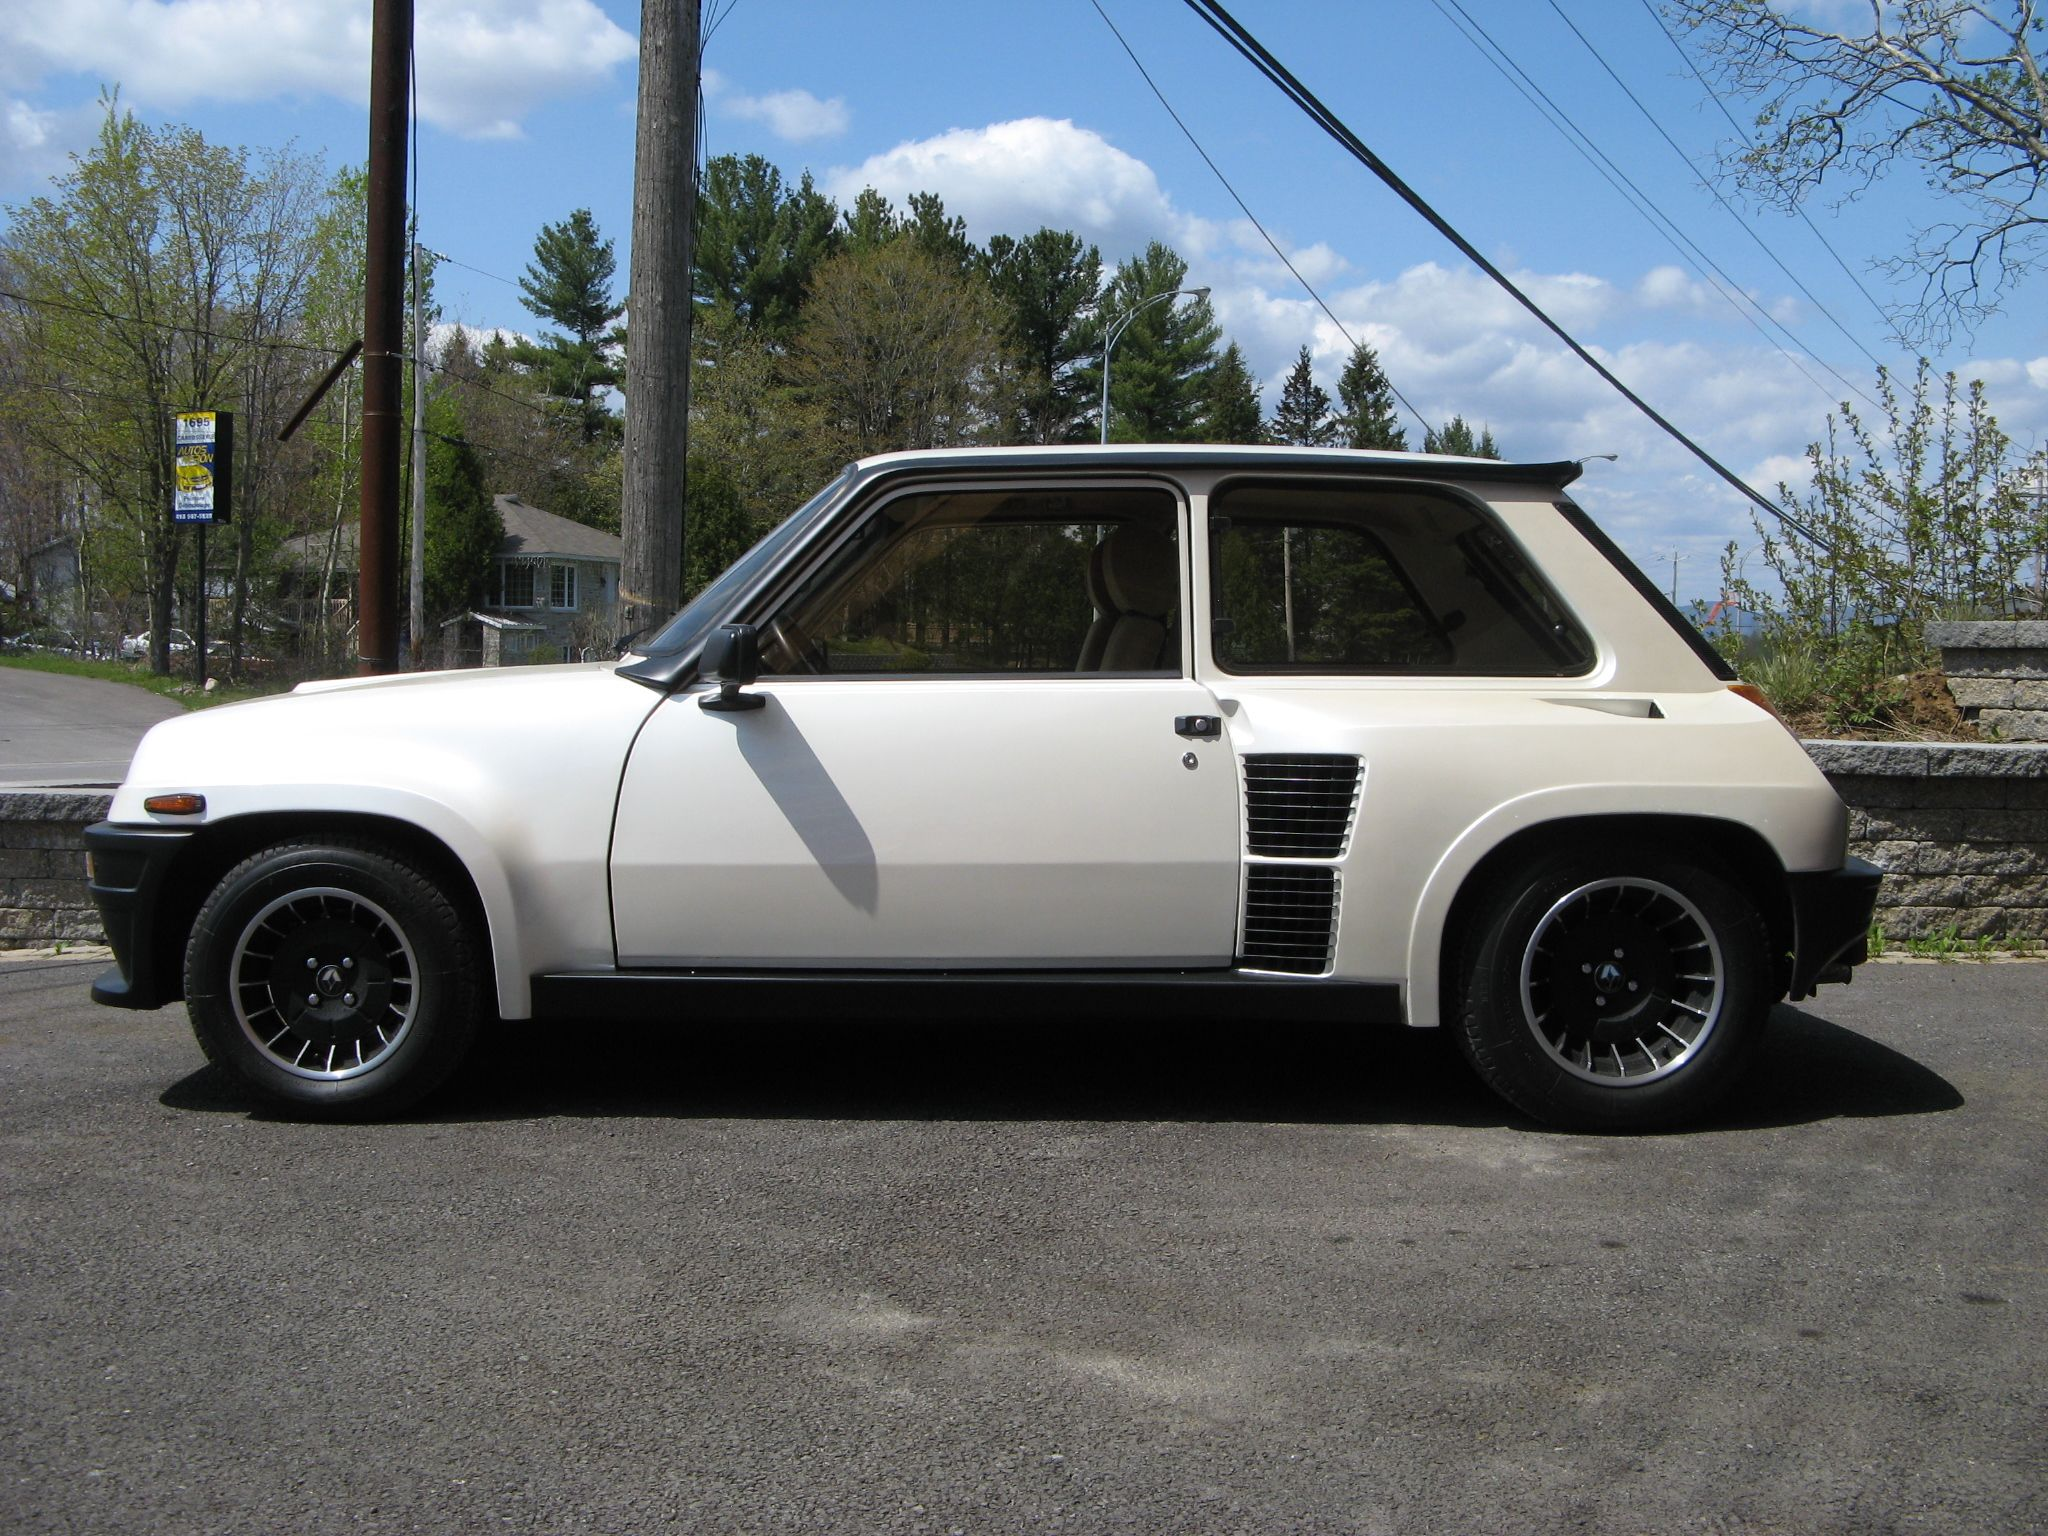 Importation R5 Turbo2... - Page 4 Img1346vn